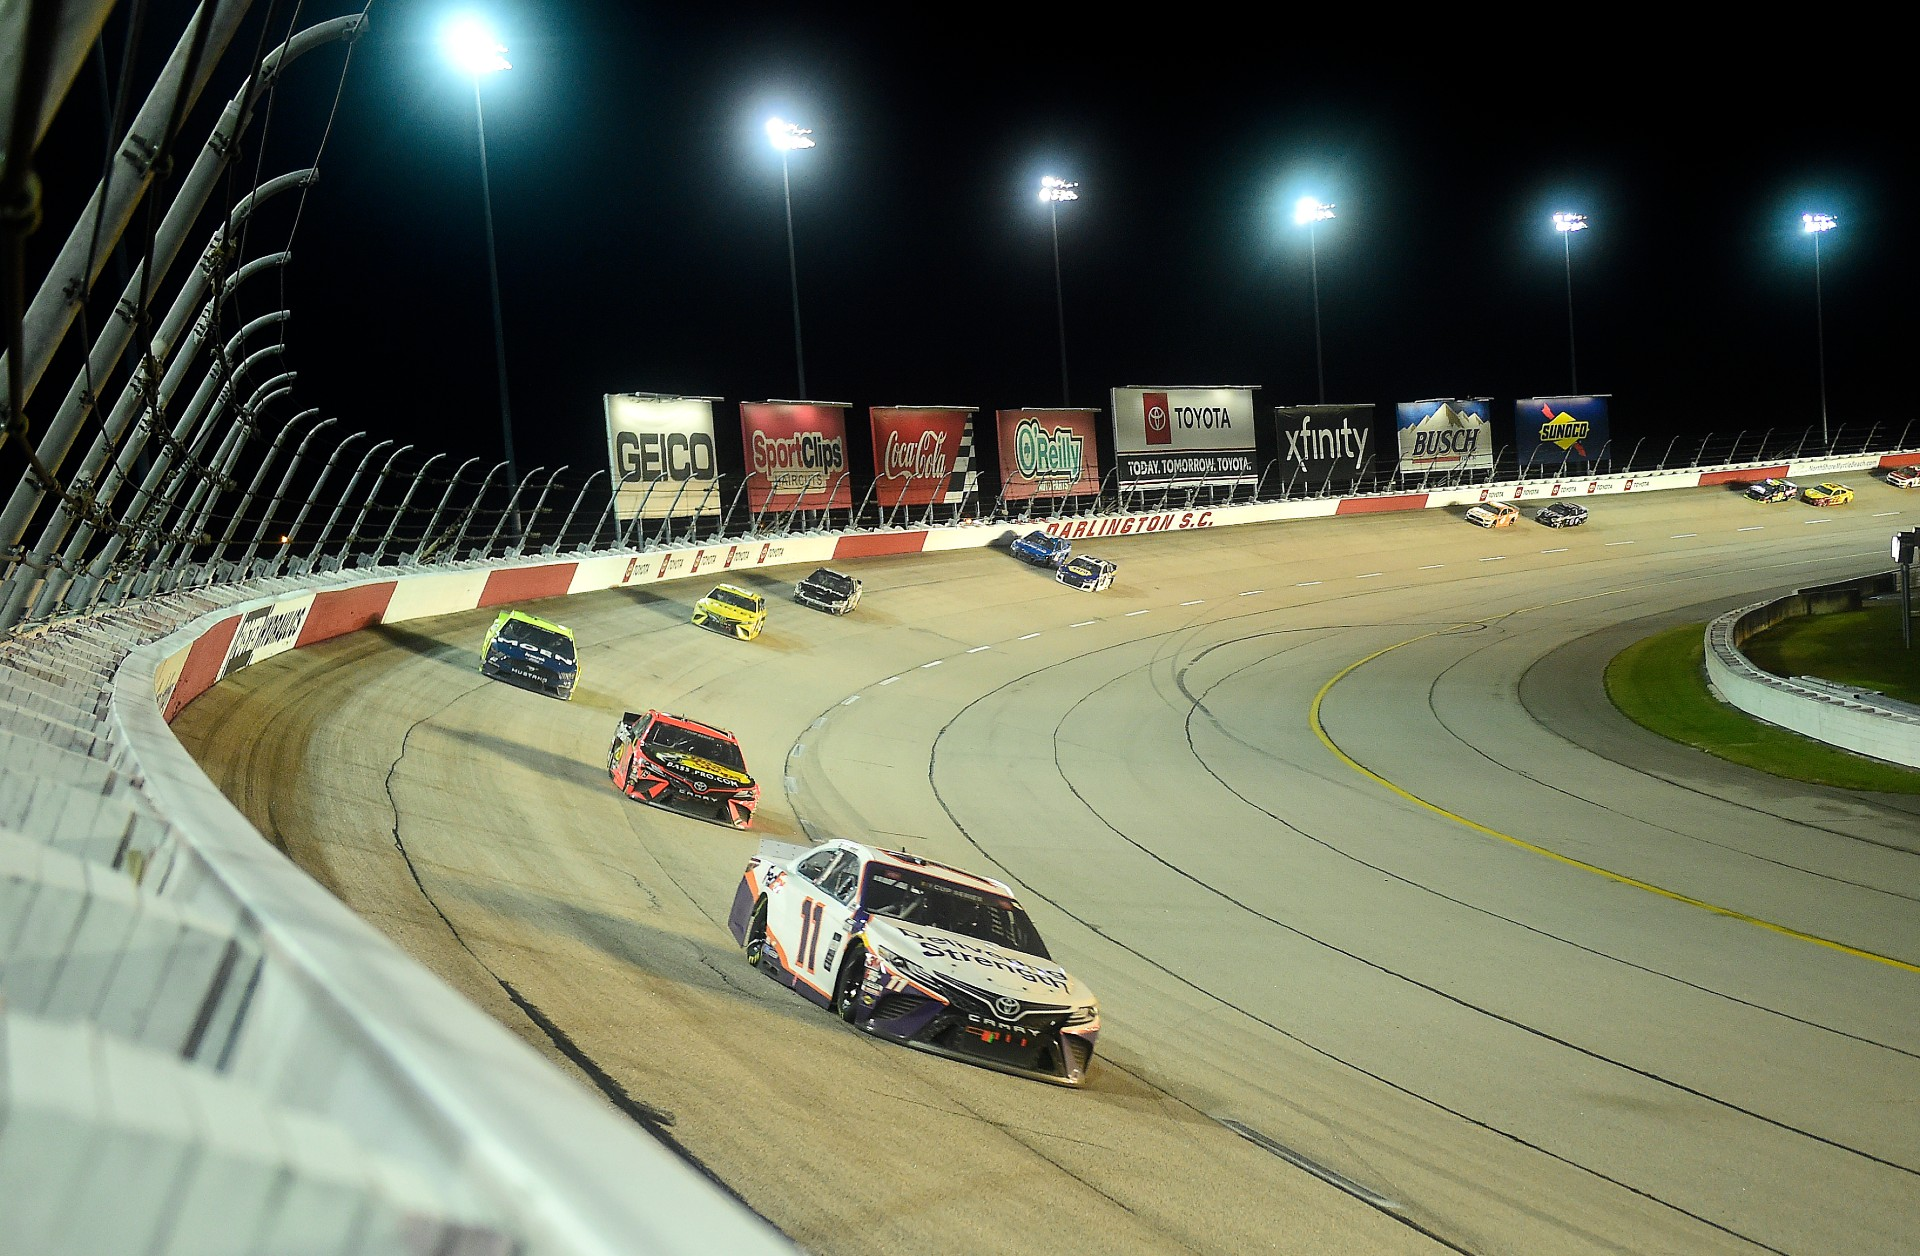 Harvick and Hamlin win at Darlington on NASCAR's return